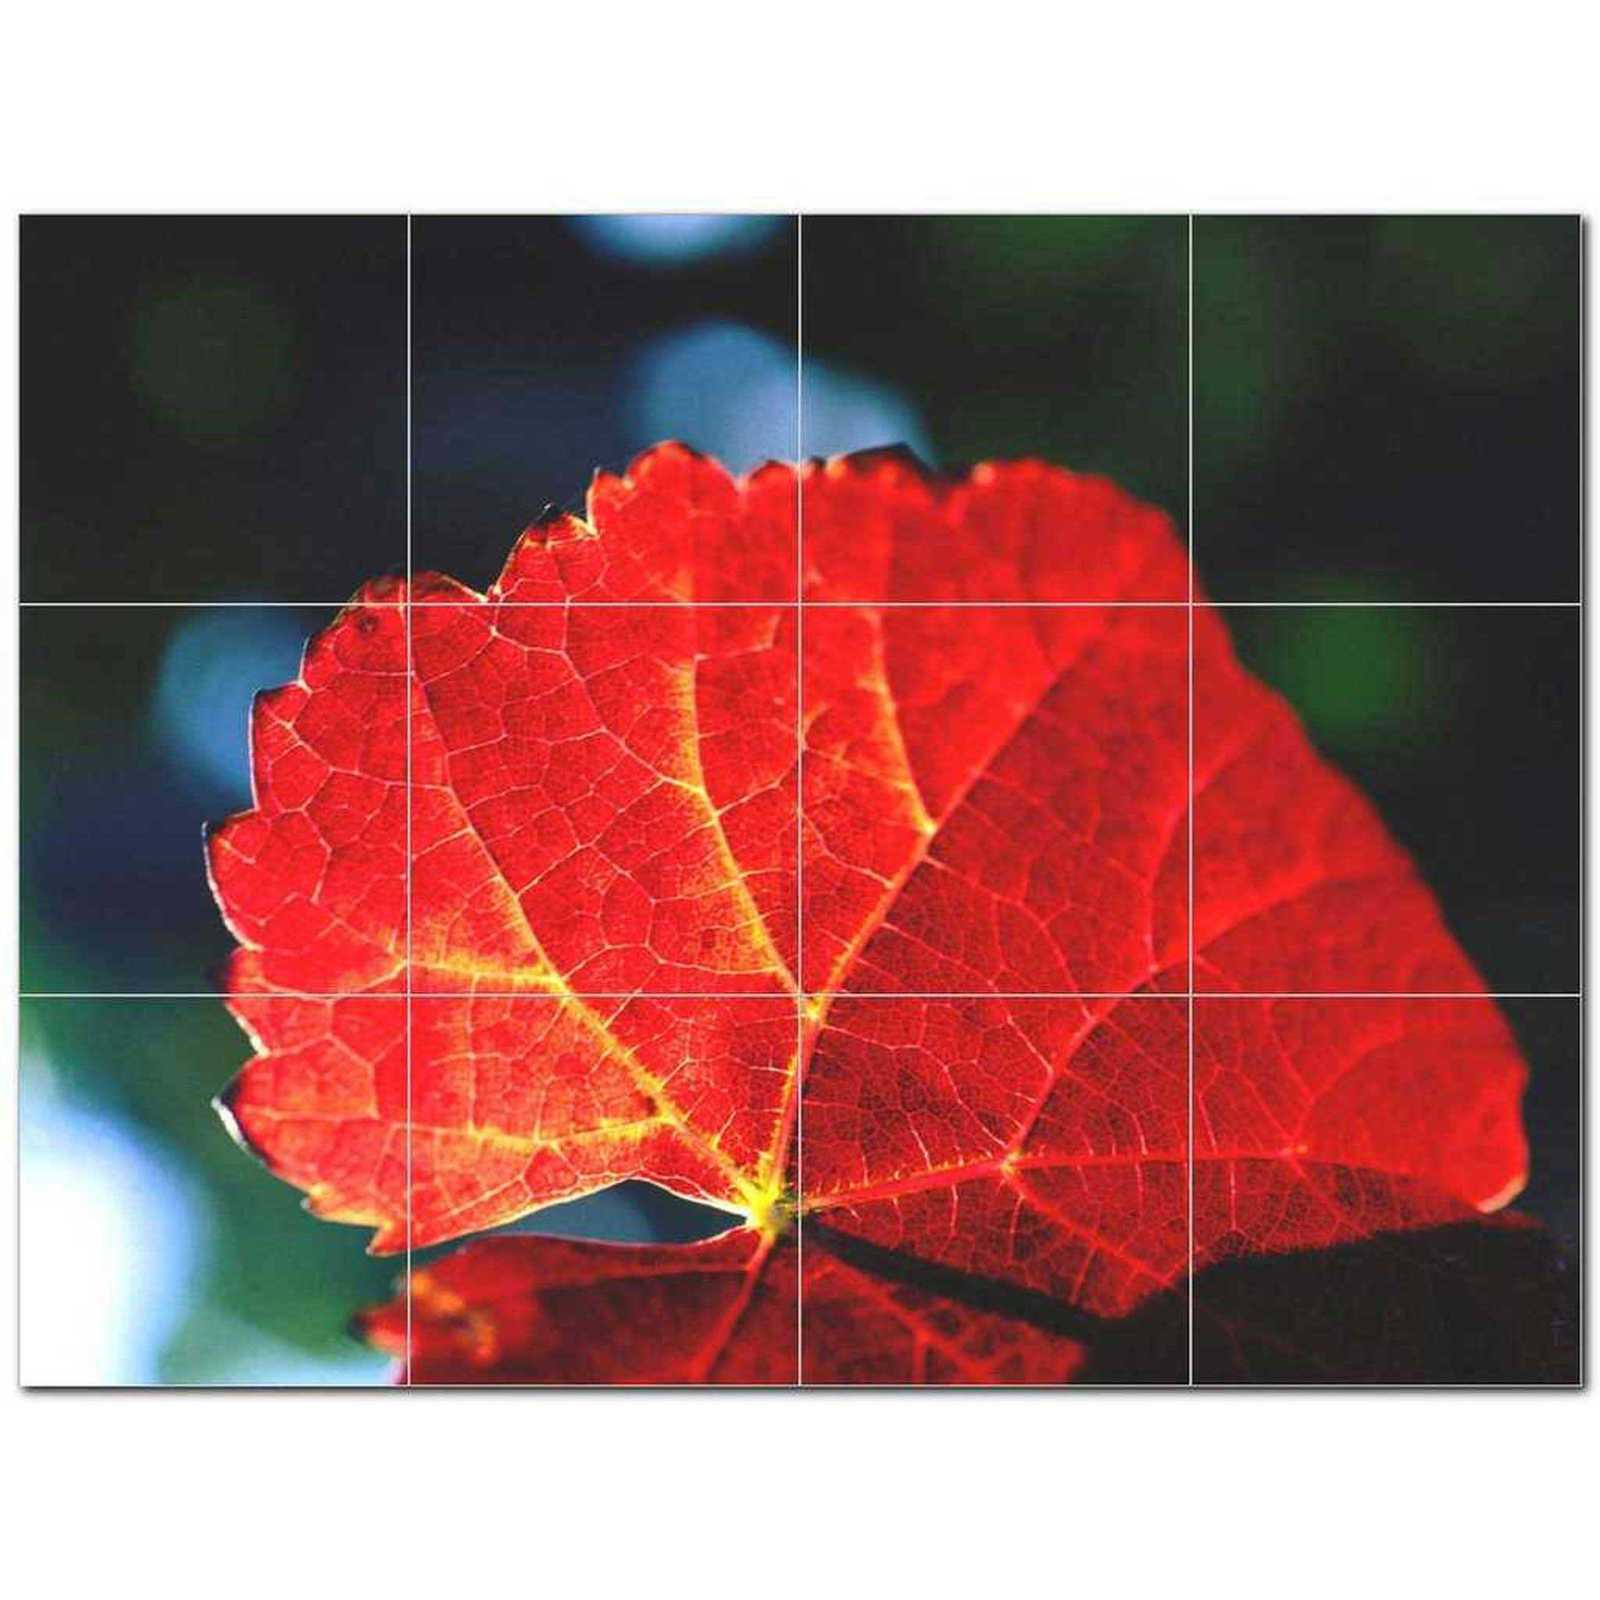 Primary image for Trees Leaves Ceramic Tile Mural Kitchen Backsplash Bathroom Shower BAZ406010